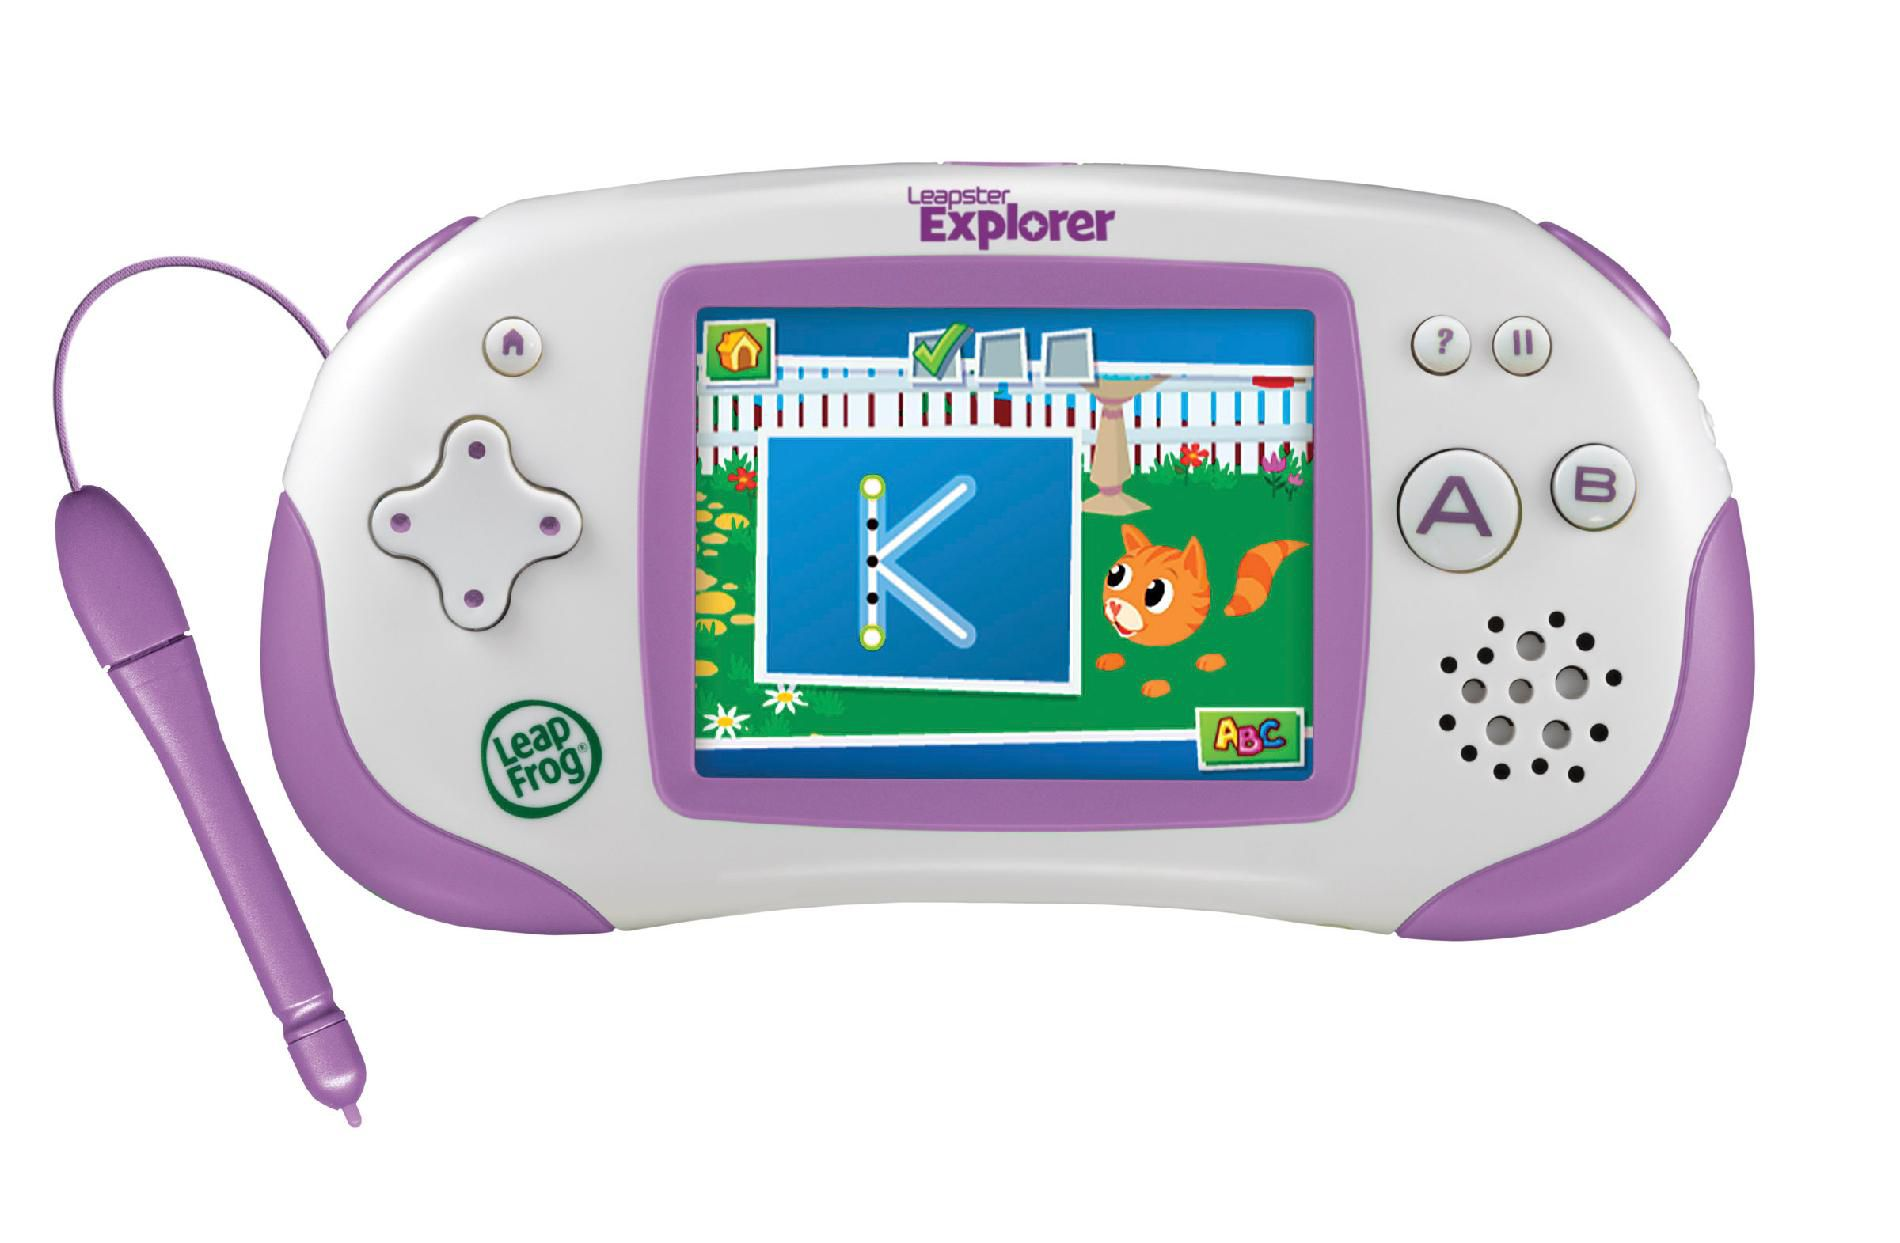 Leapster Explorer Learning Experience